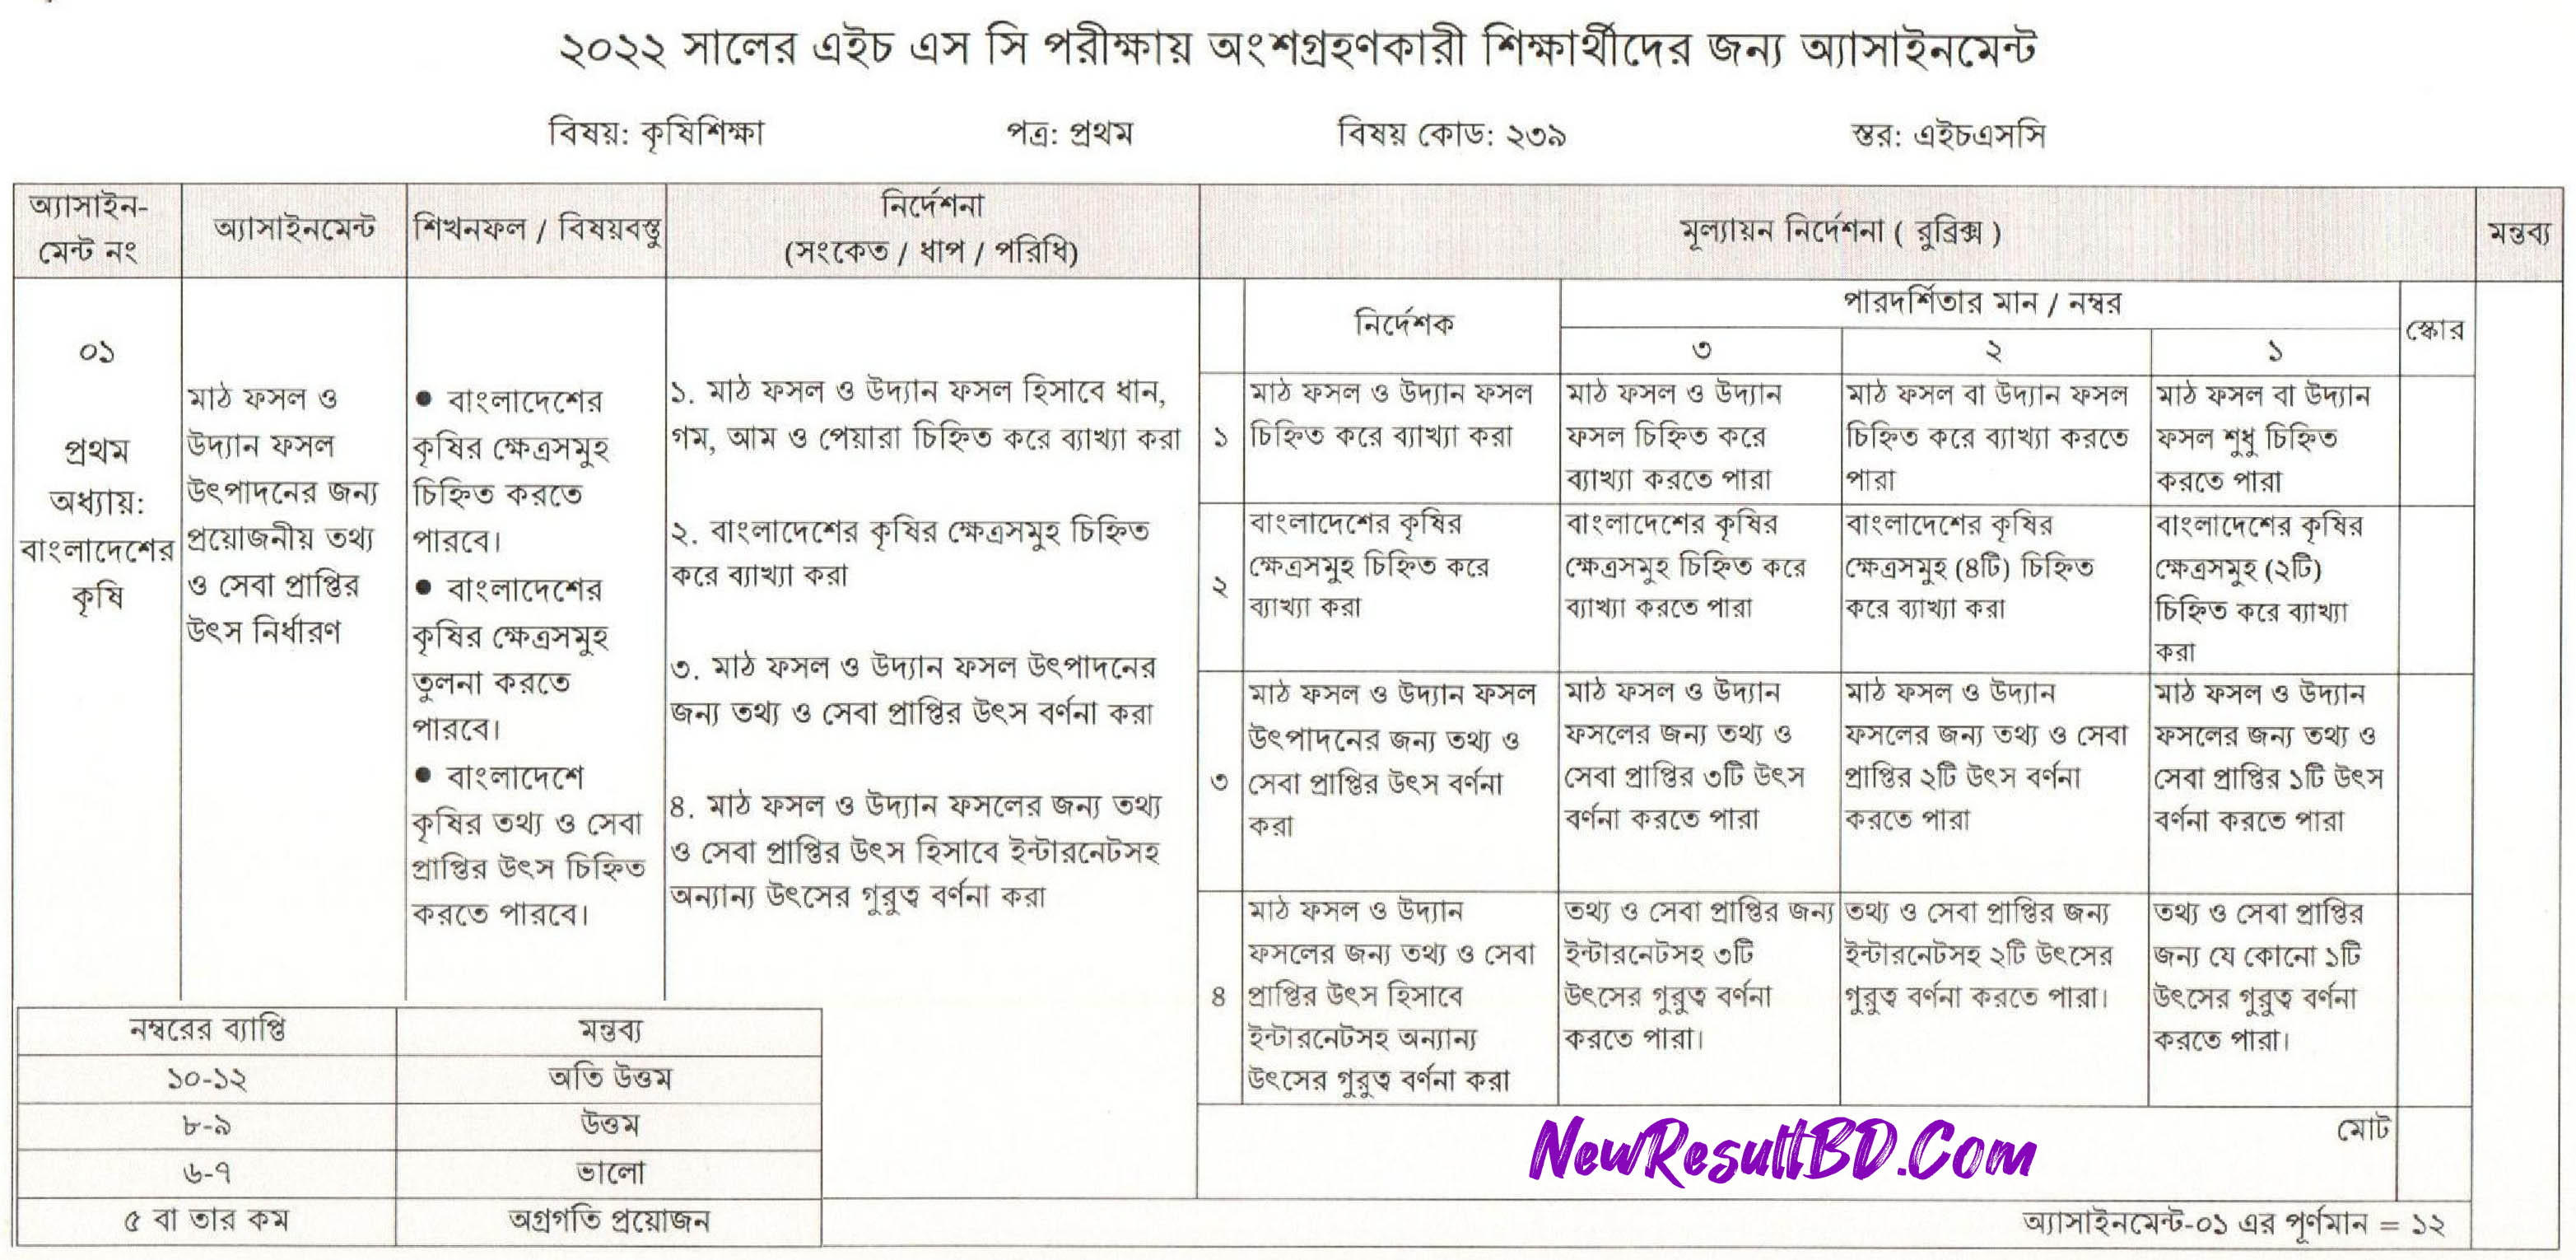 HSC Agricultural Education 5th Week Assignment 2022